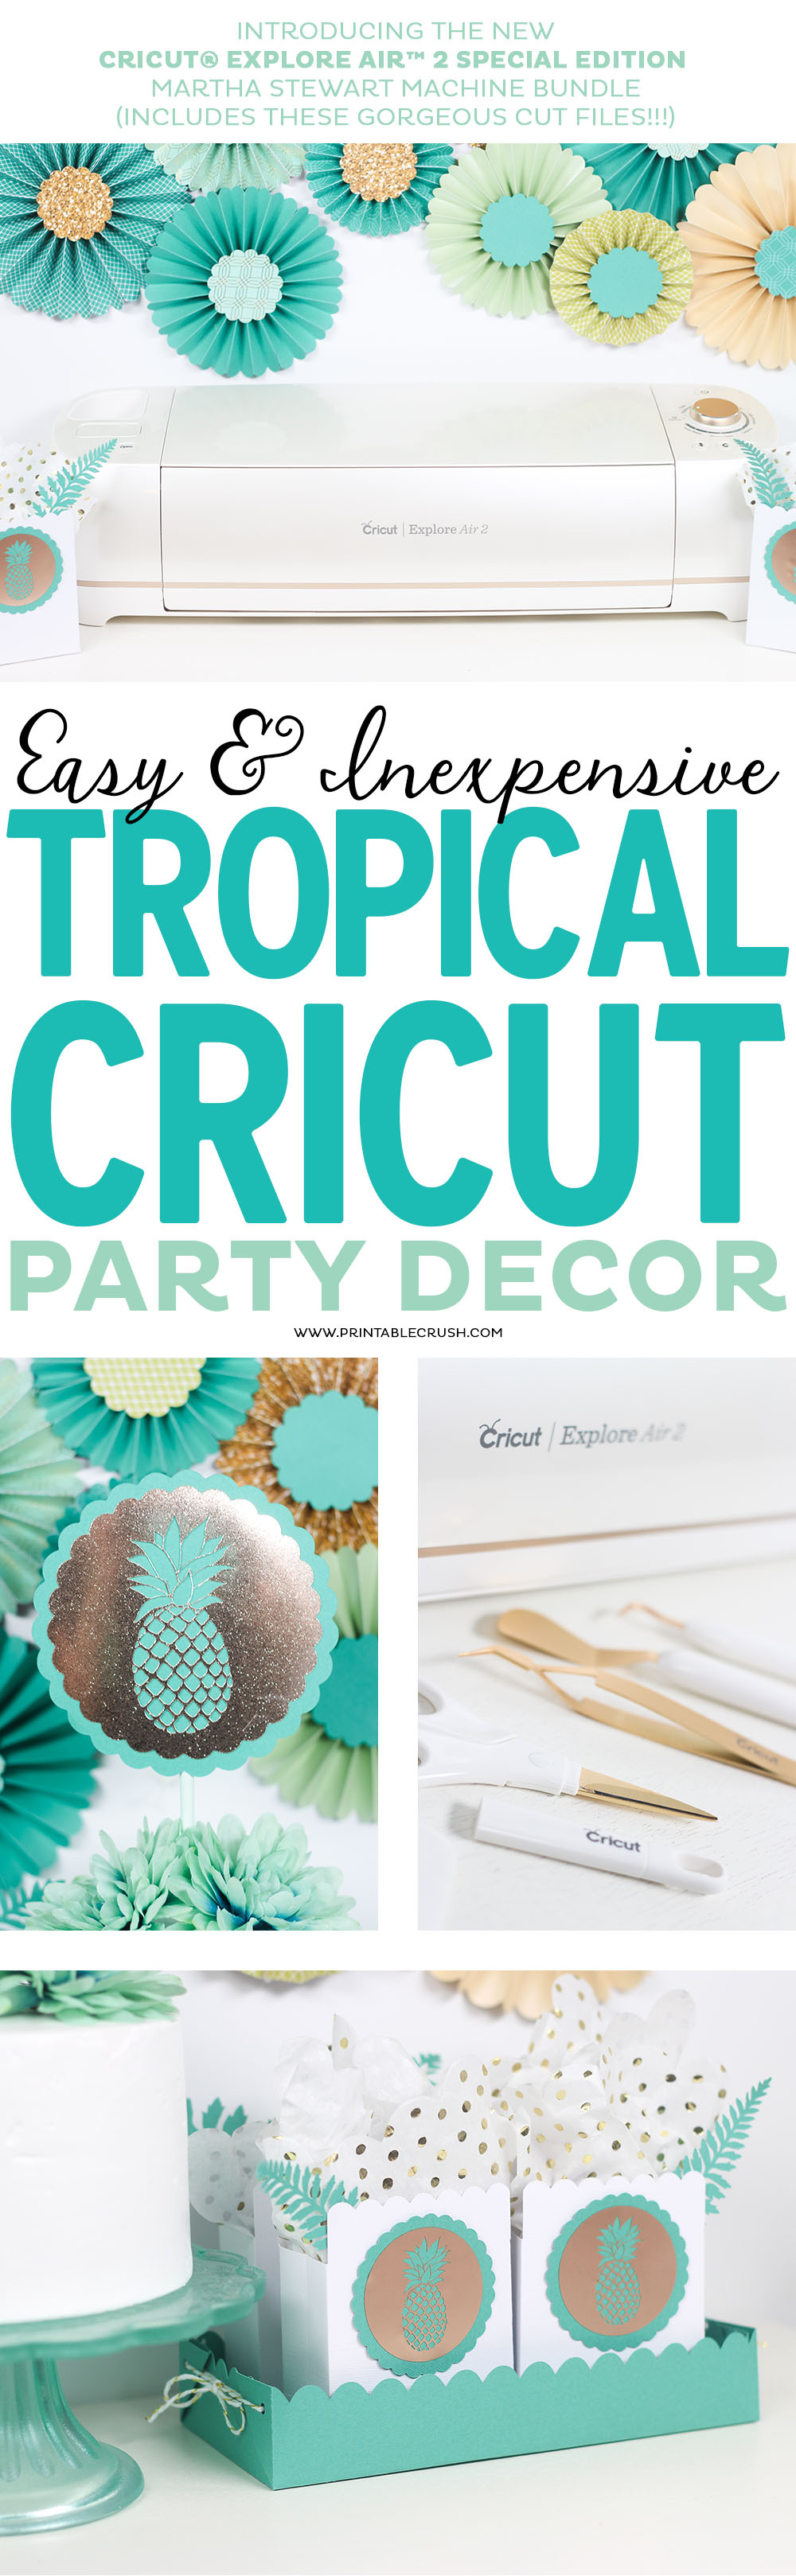 This tropical Cricut party decor is so simple to create with the new graphics included with the Martha StewartCricut® Explore Air™ 2 Special Edition! #ad, #CricutMarthaStewart, #MadeWithMichaels #CricutMade #Cricut via @printablecrush